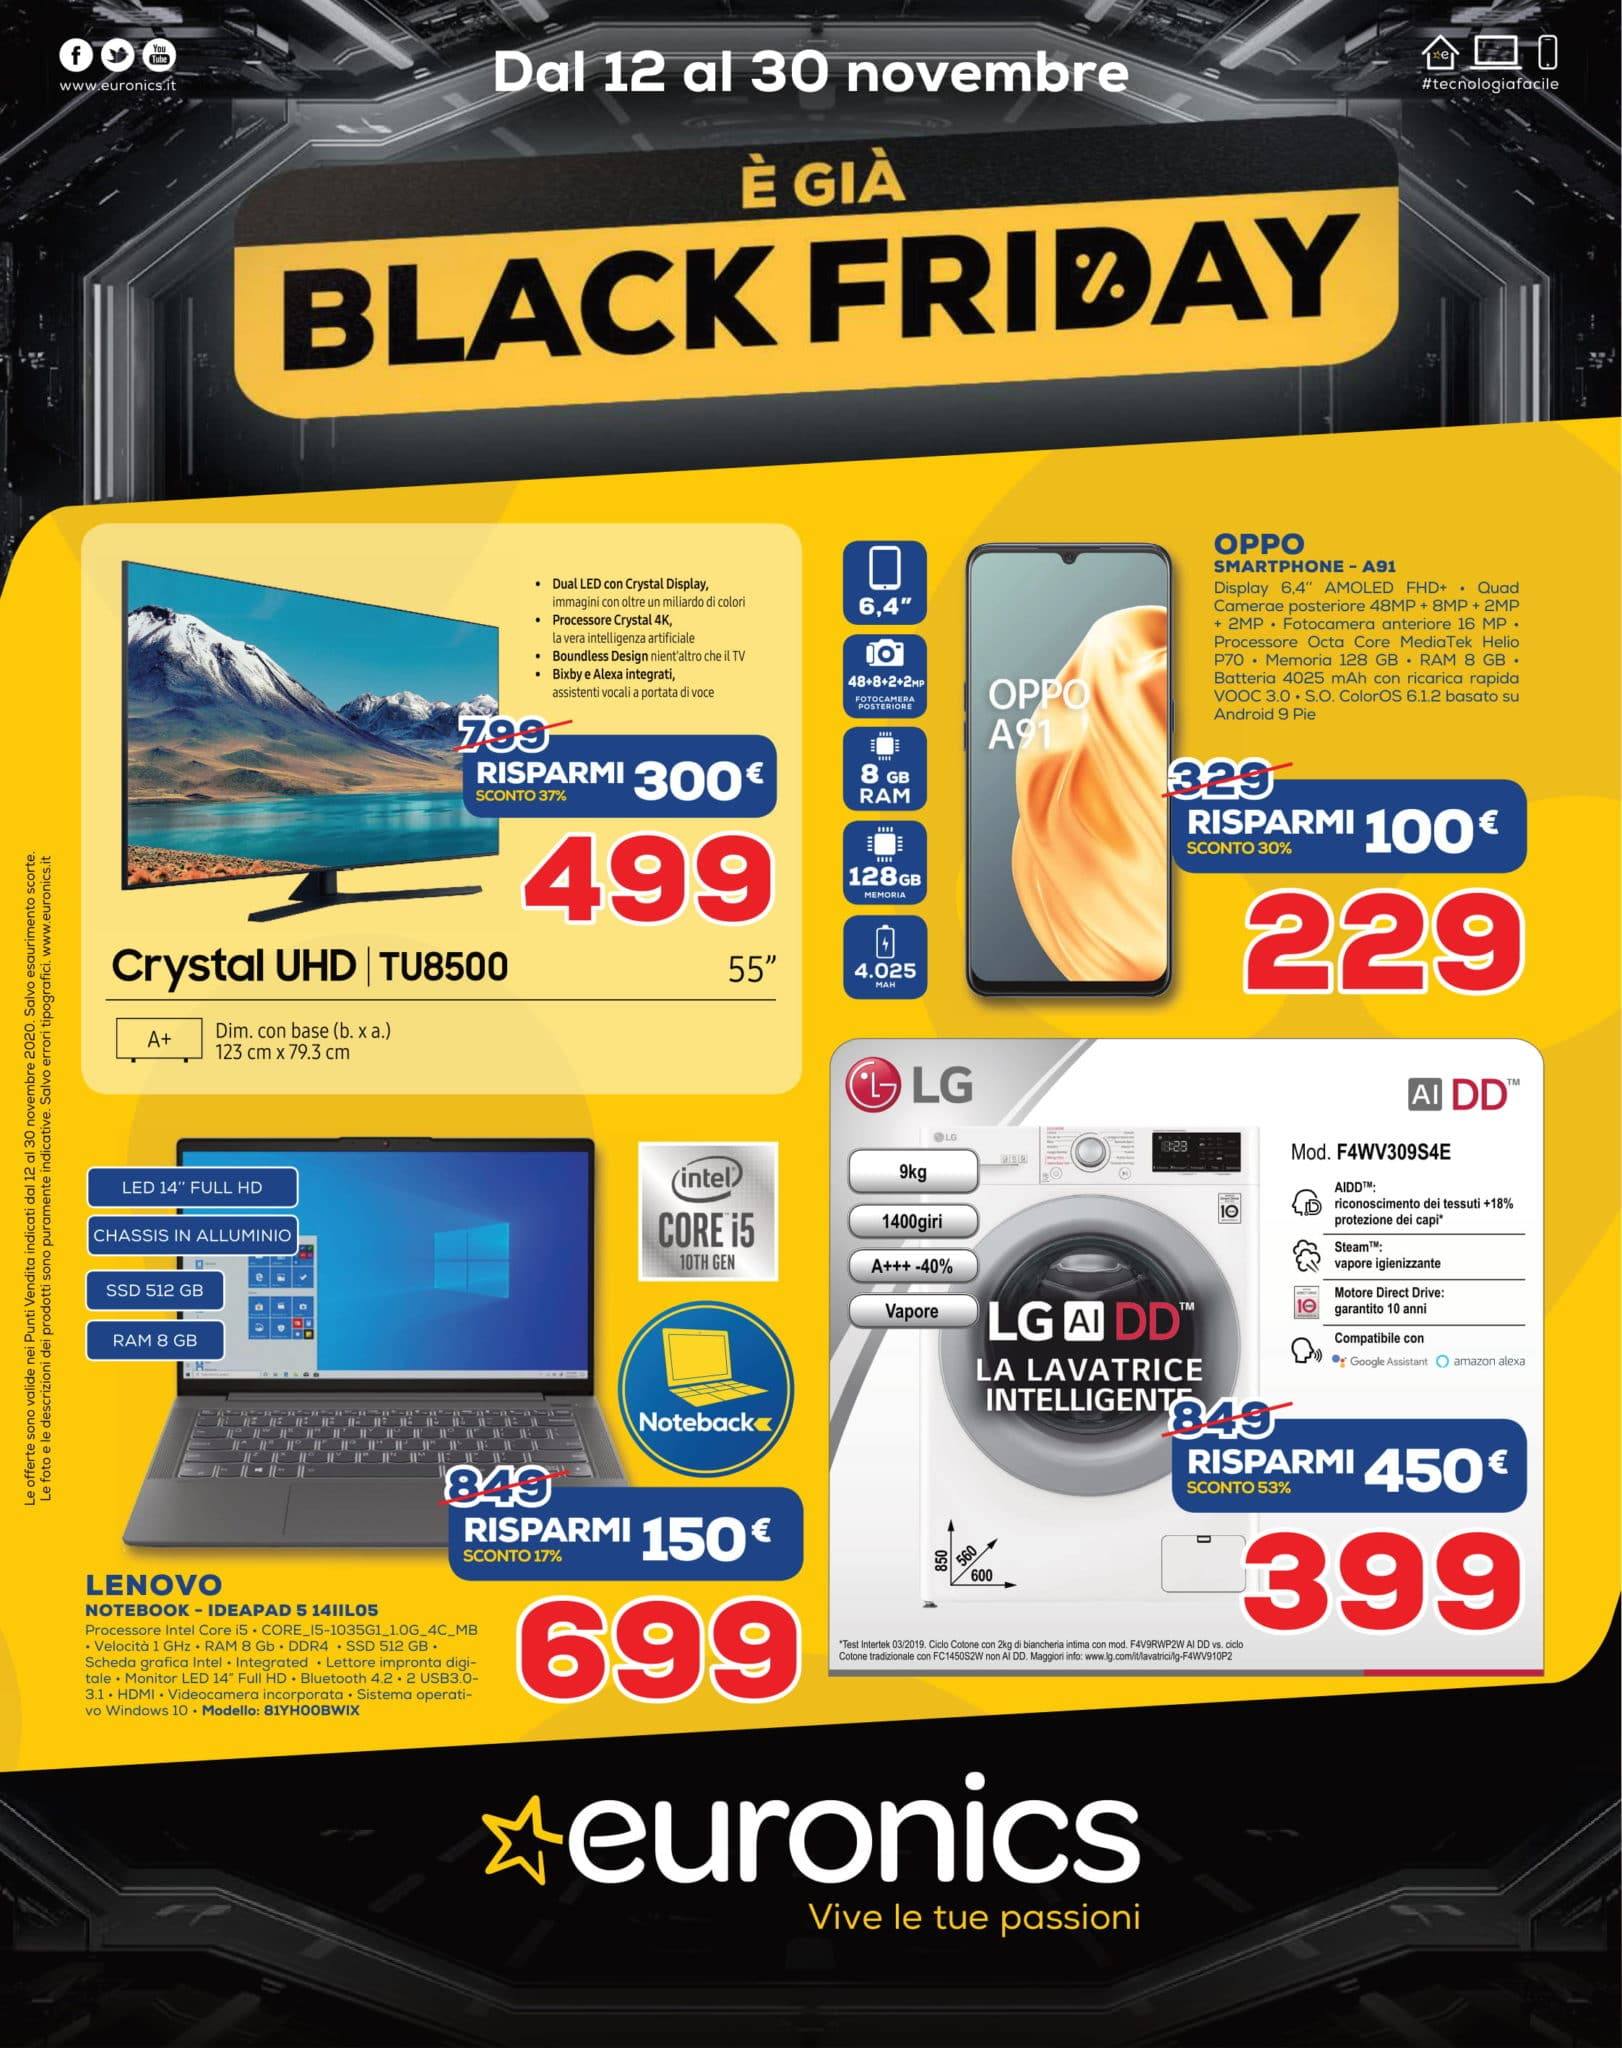 Volantino Euronics Black Friday 12 Novembre - 30 Novembre 2020